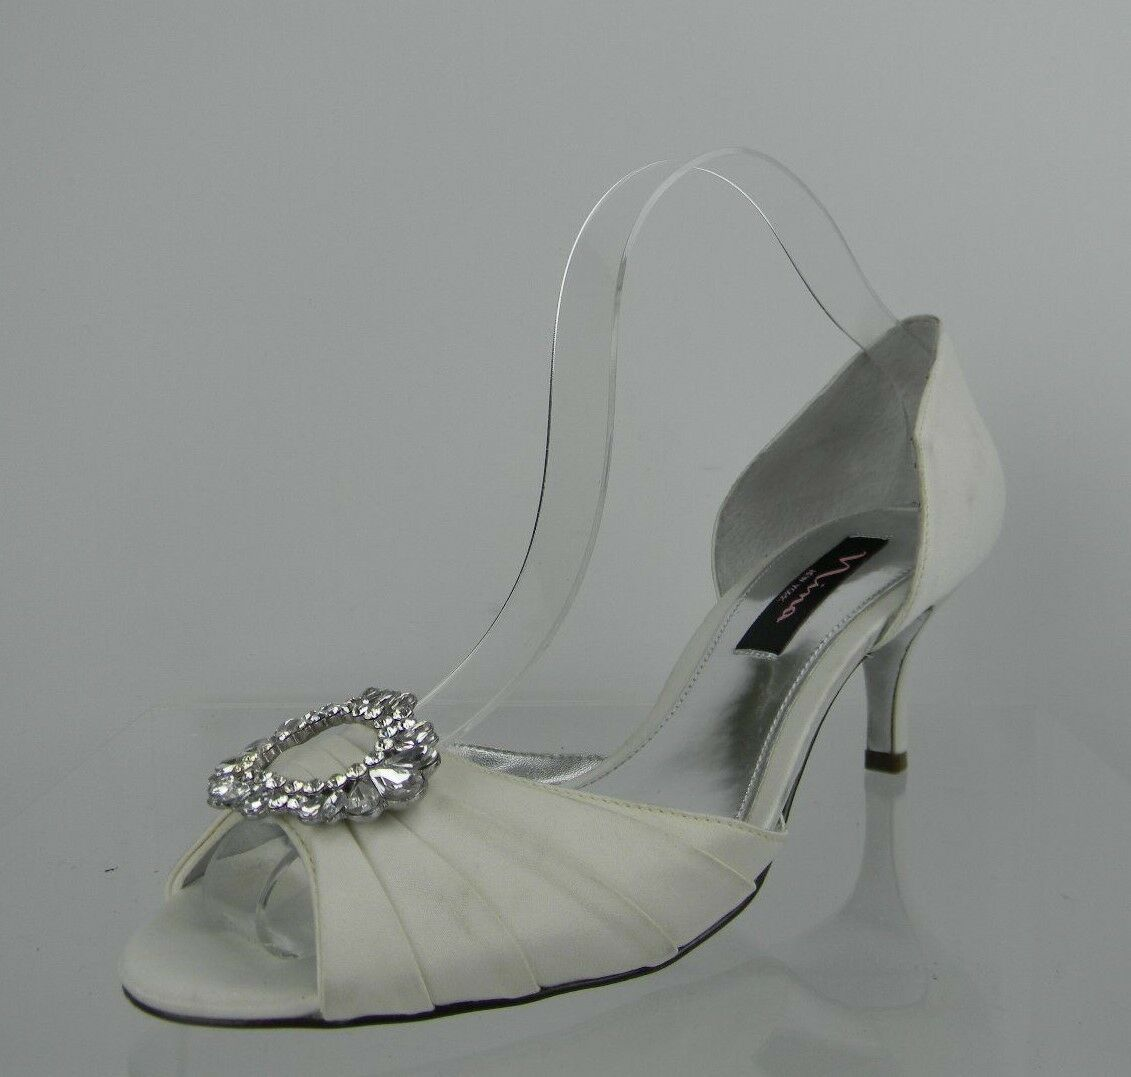 Womens Nina Crystah Shoes M White Heels Size 9 M Shoes 586cfa